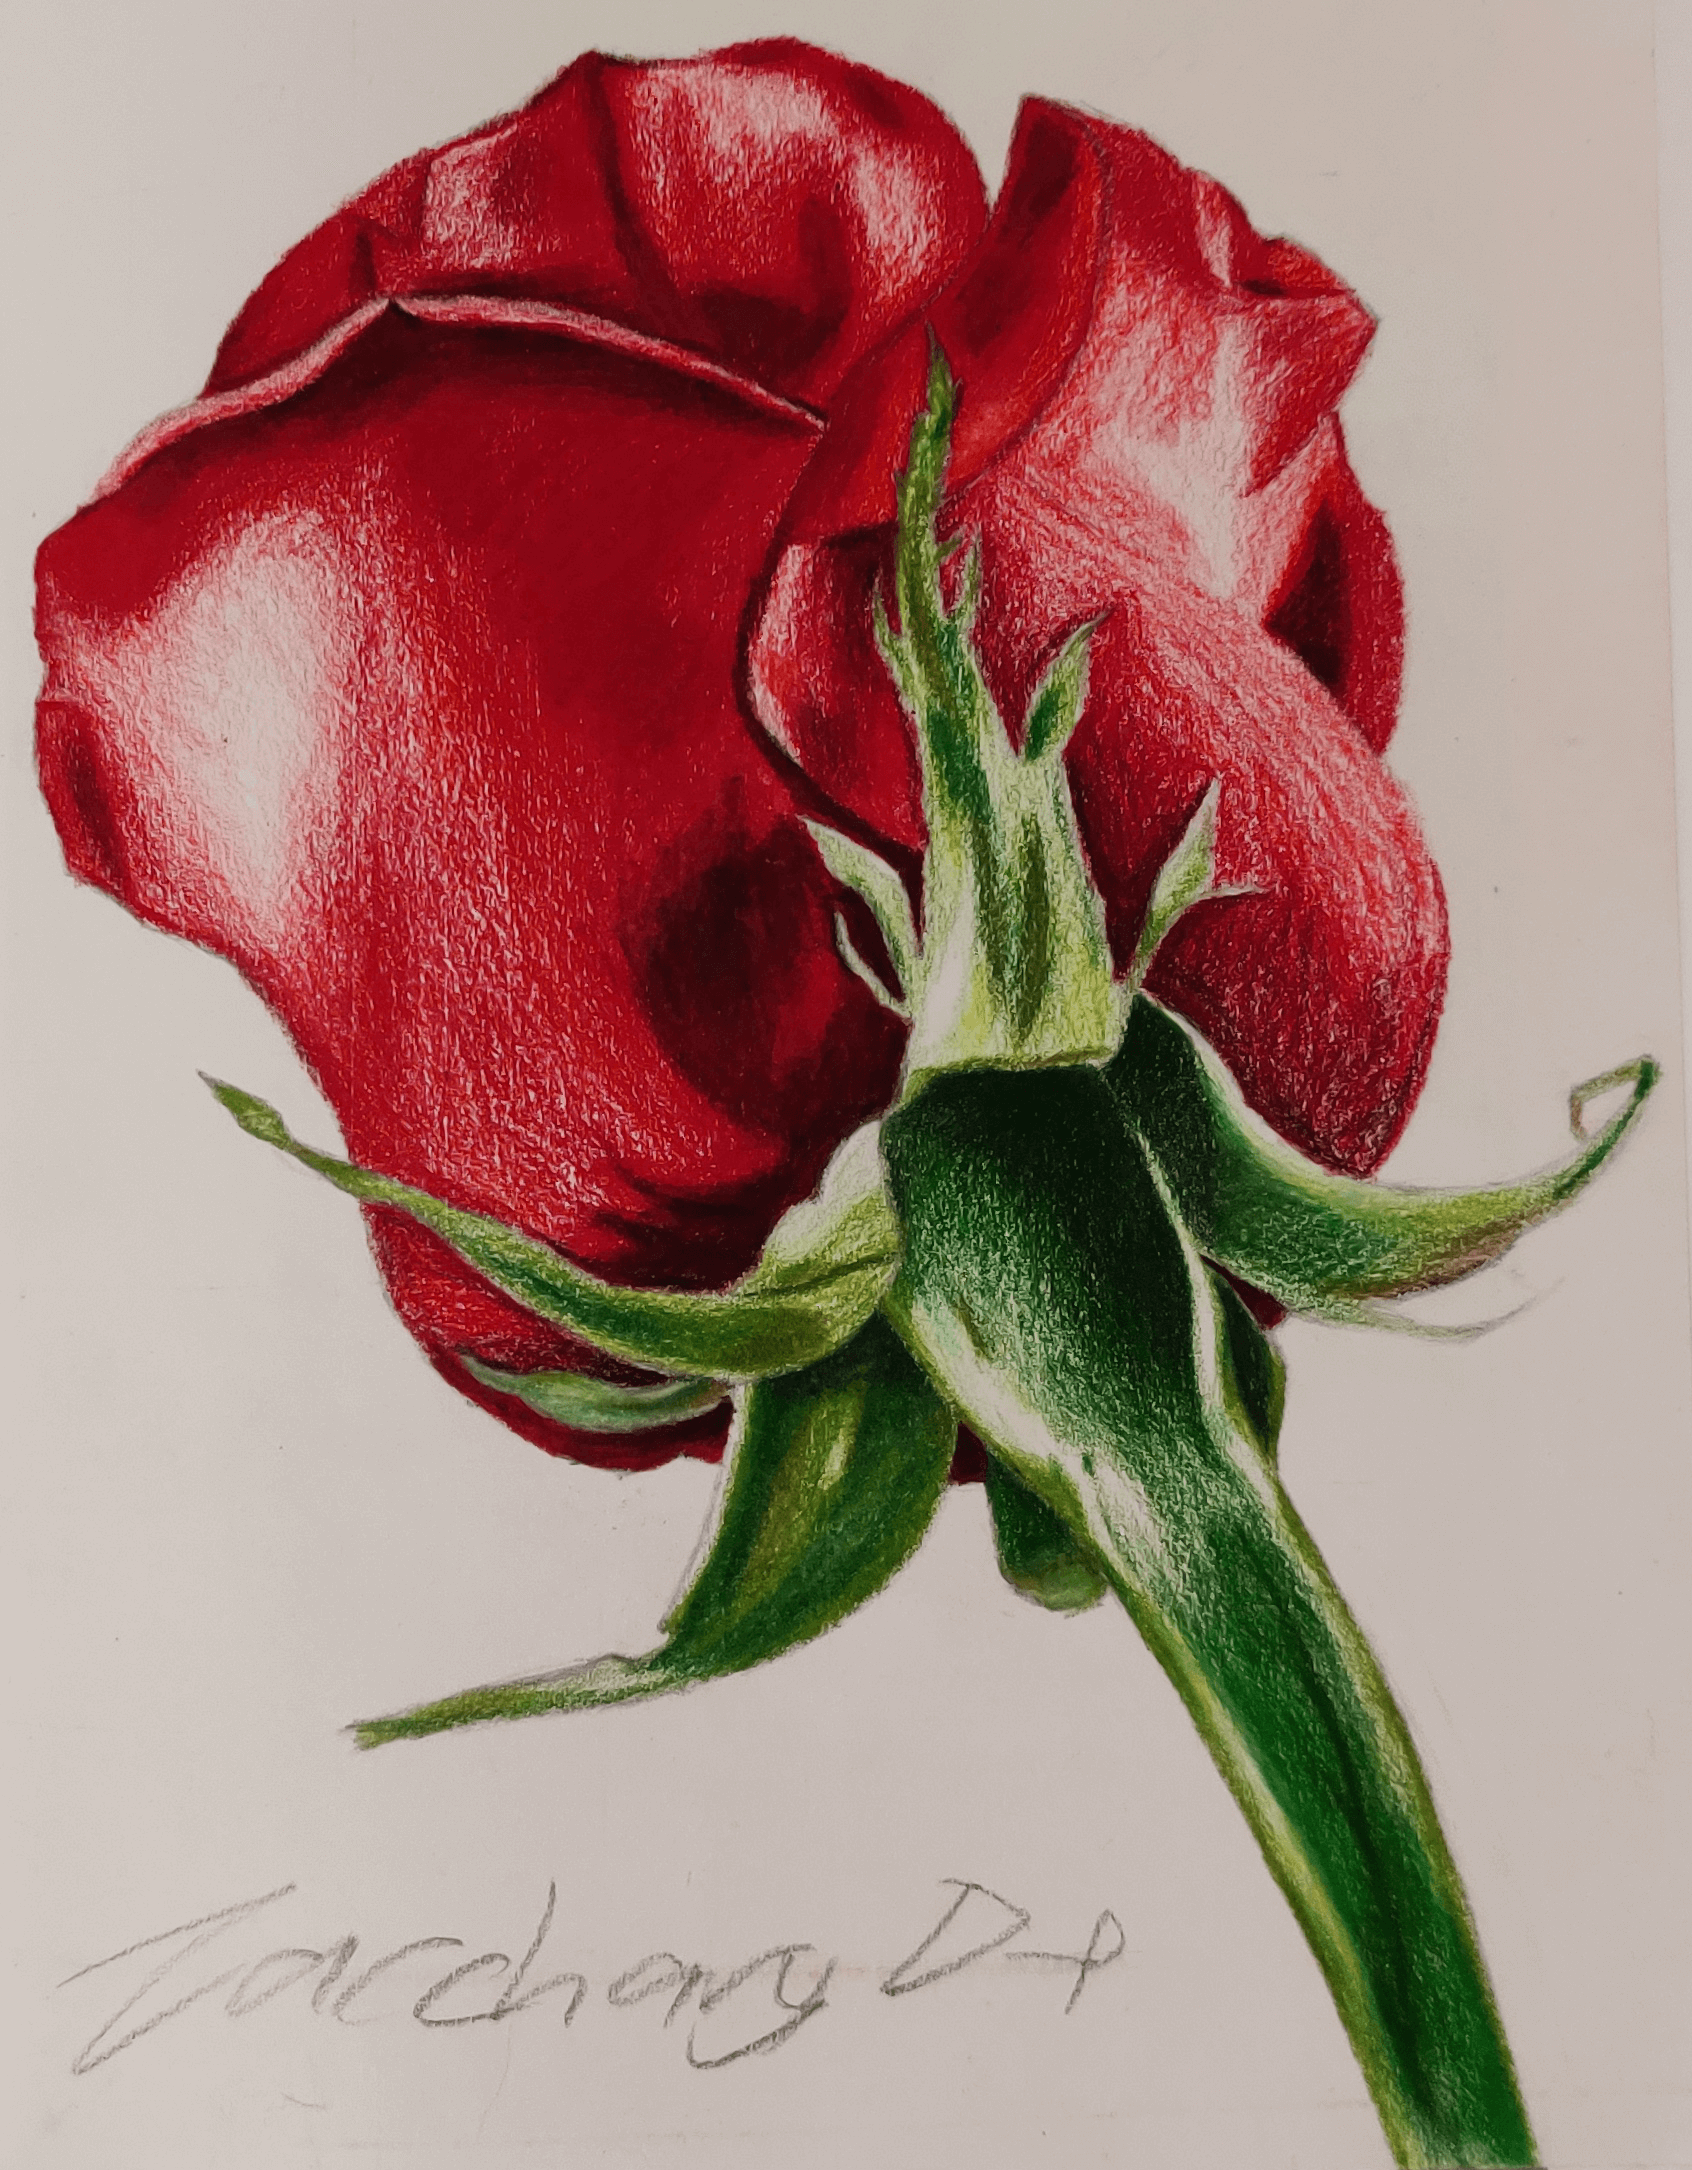 A colour value drawing of a rose done in pencil crayon.